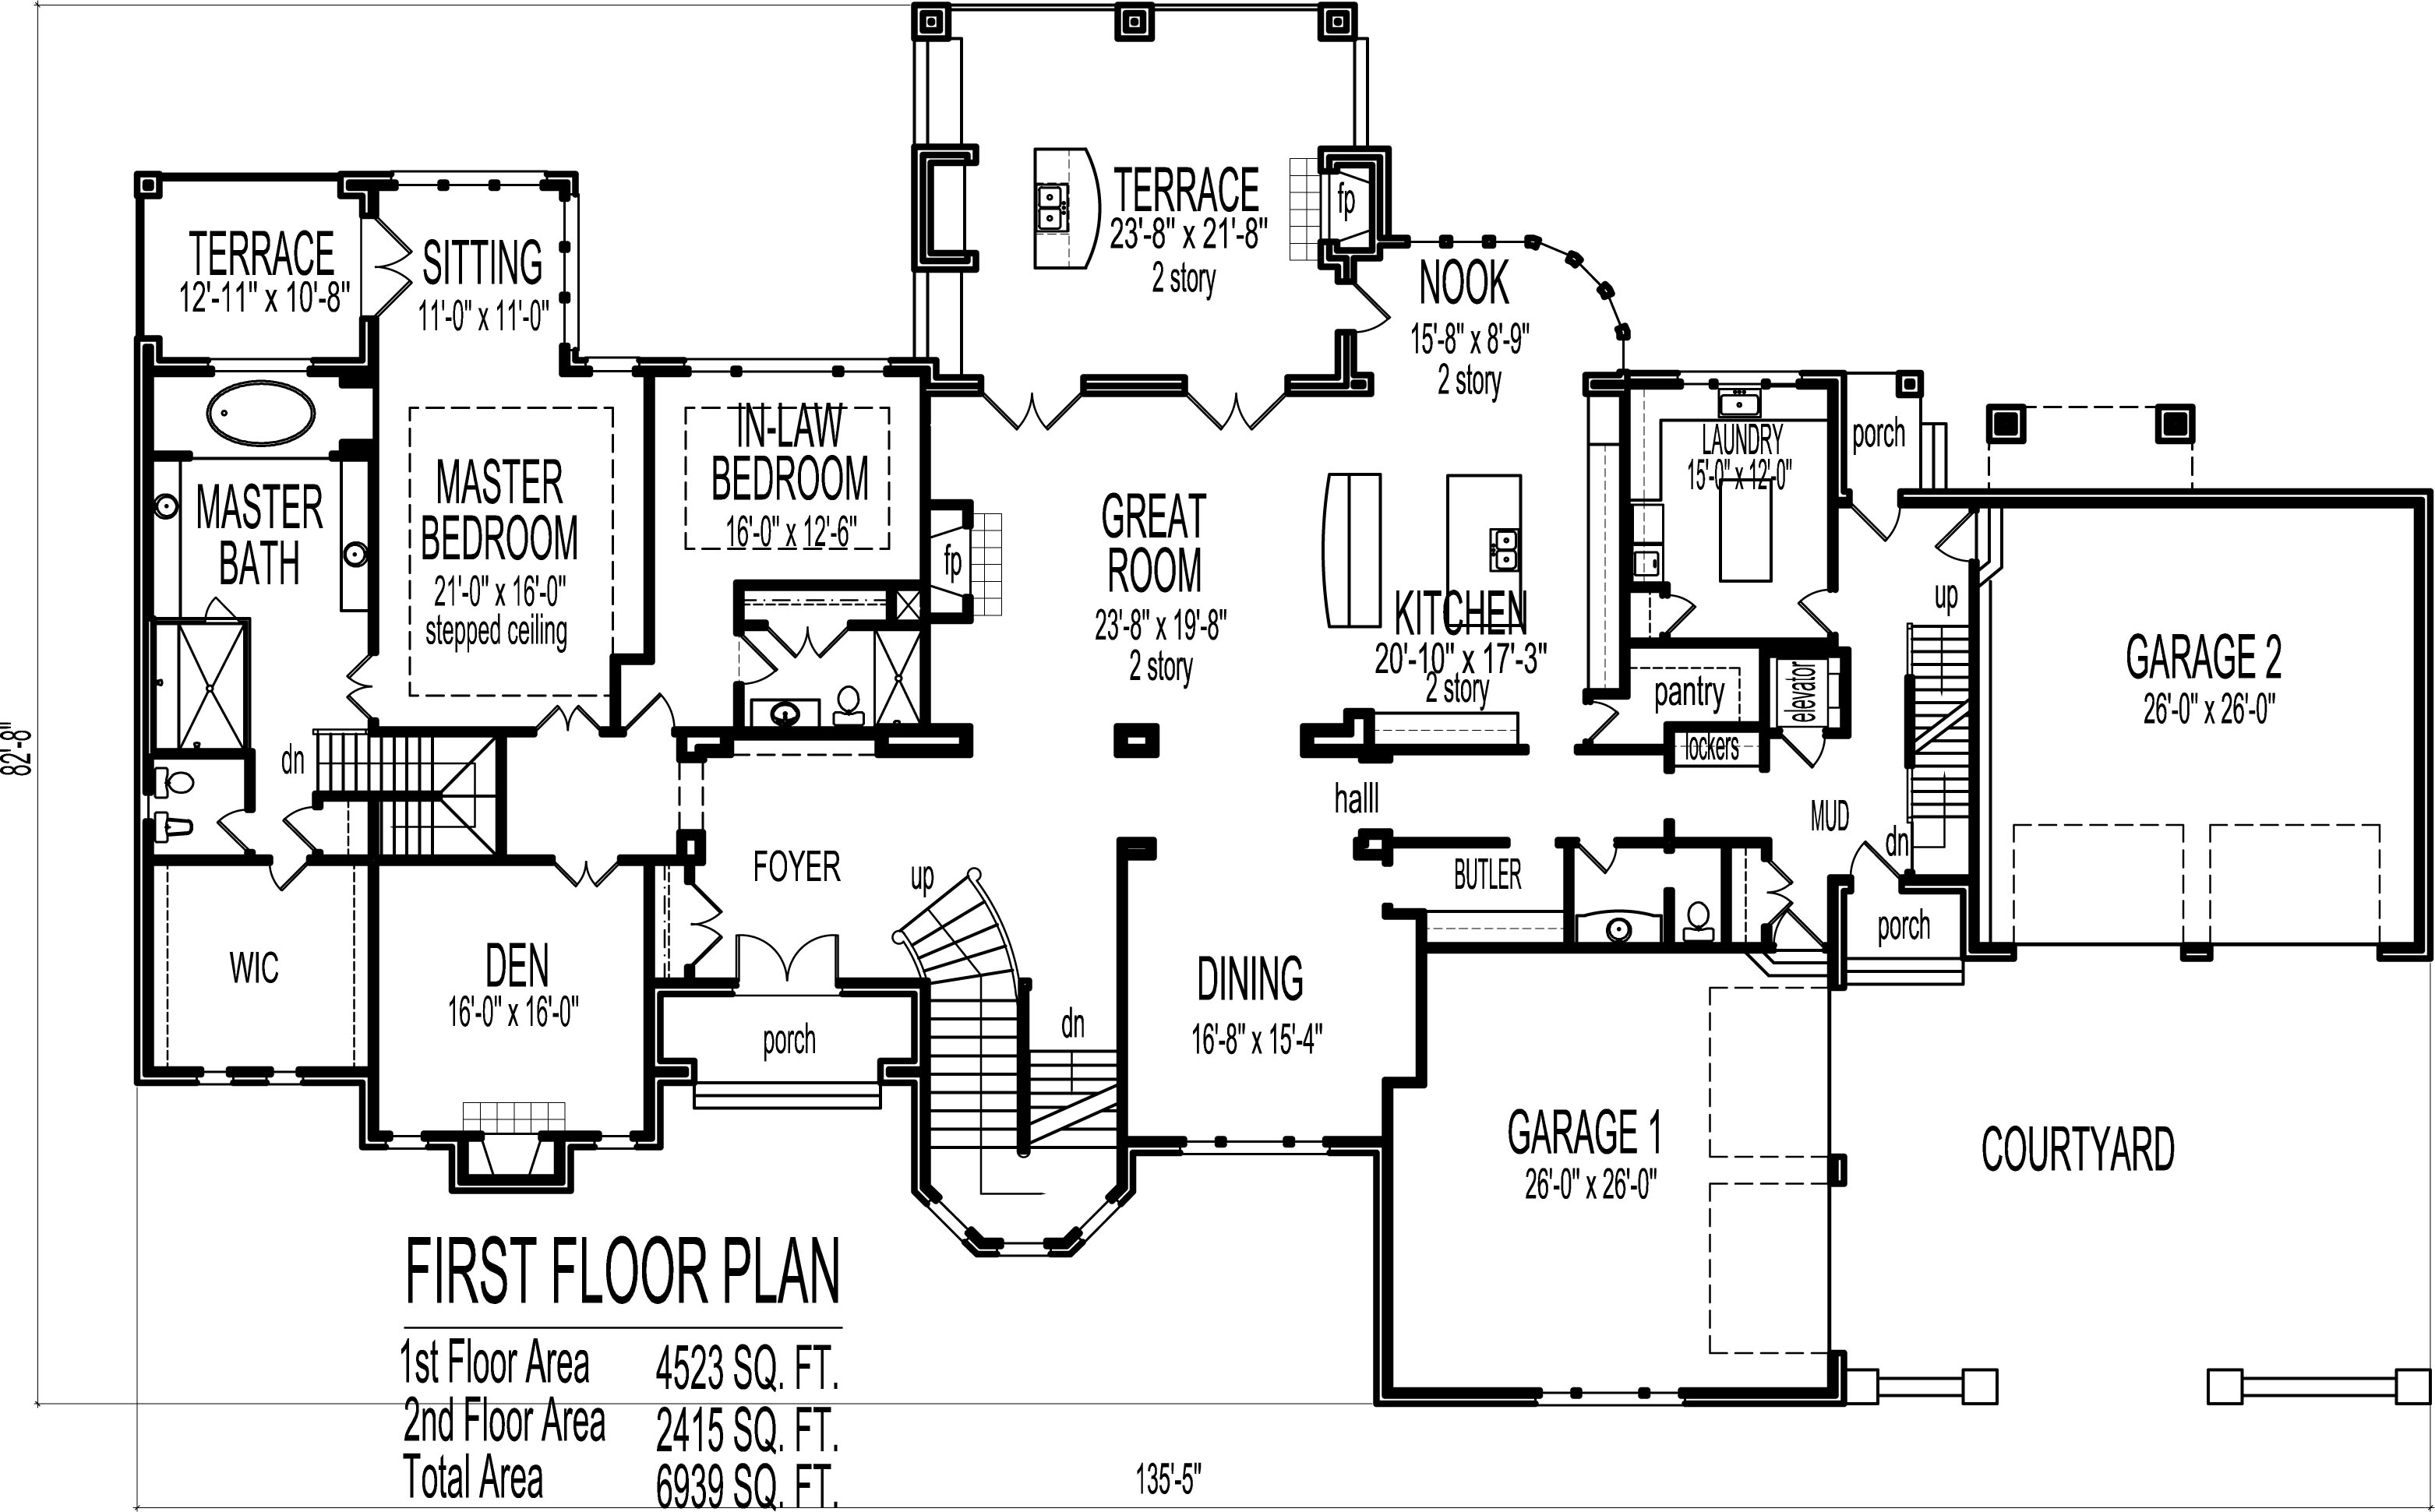 Dream house floor plans blueprints 2 story 5 bedroom large Large house floor plans